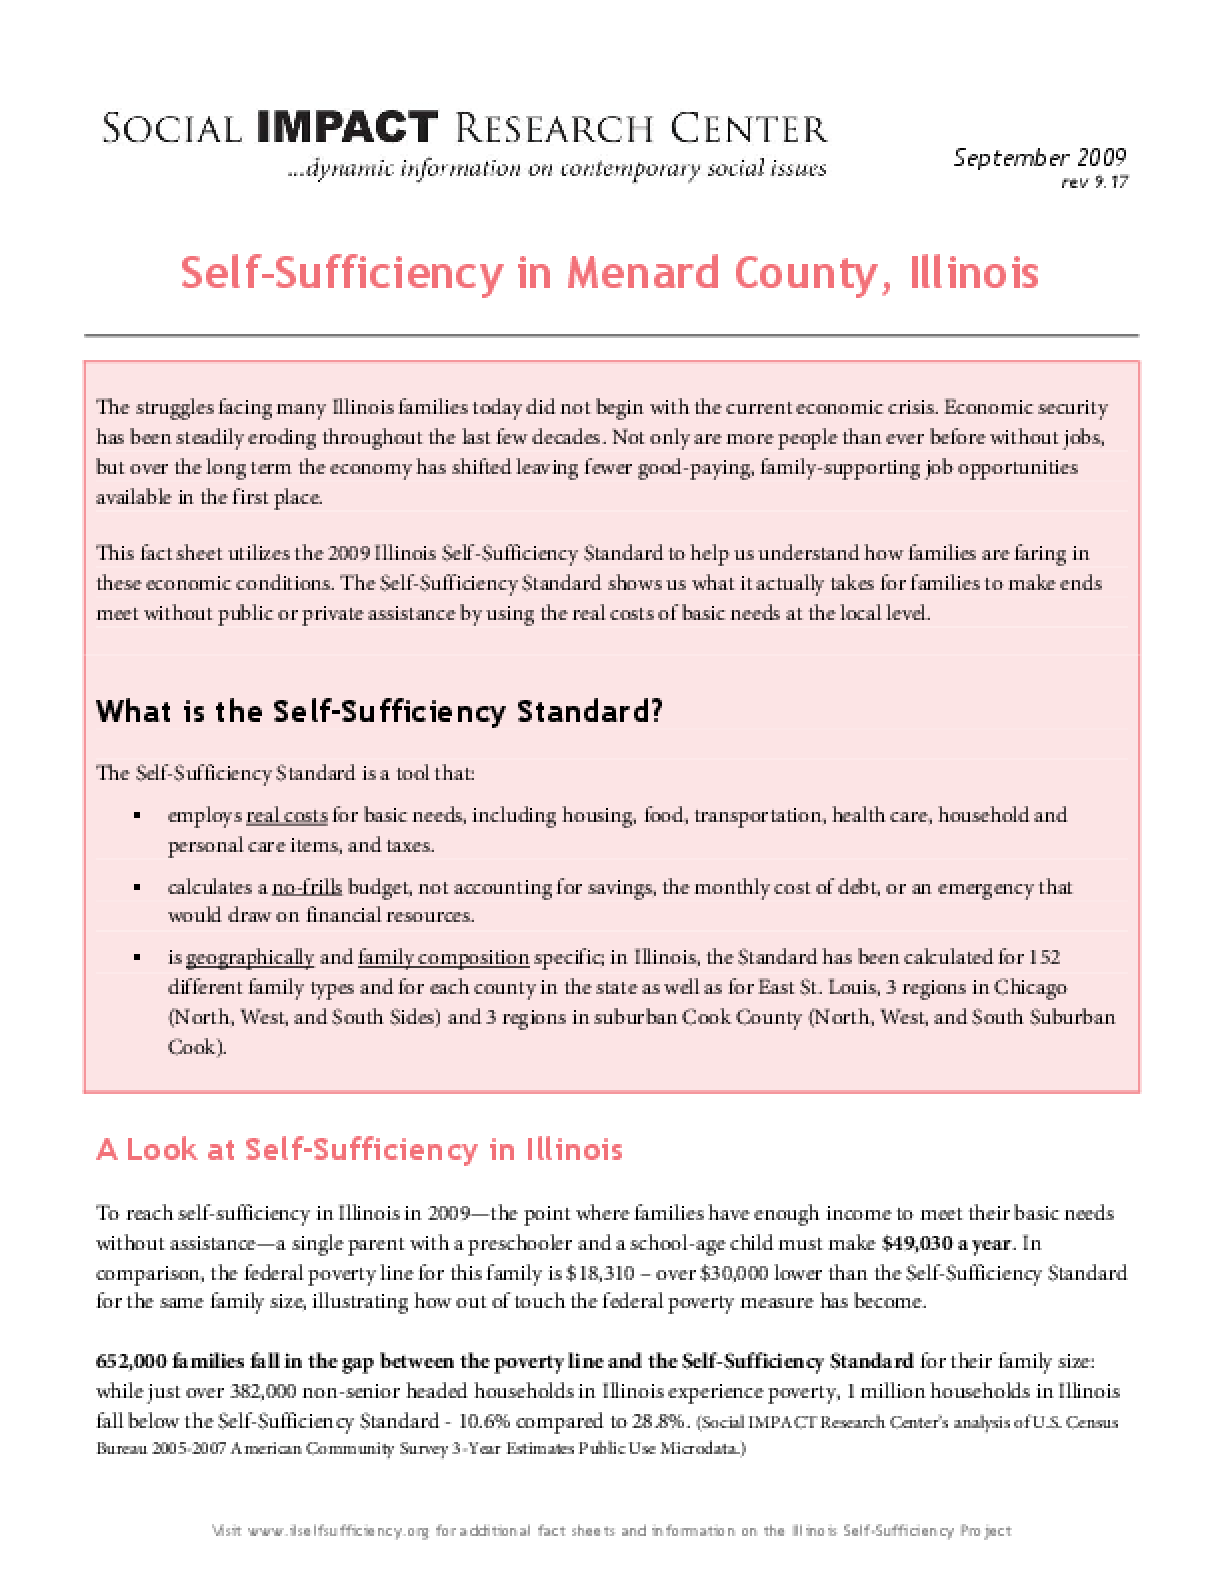 Self-Sufficiency in Menard County, Illinois